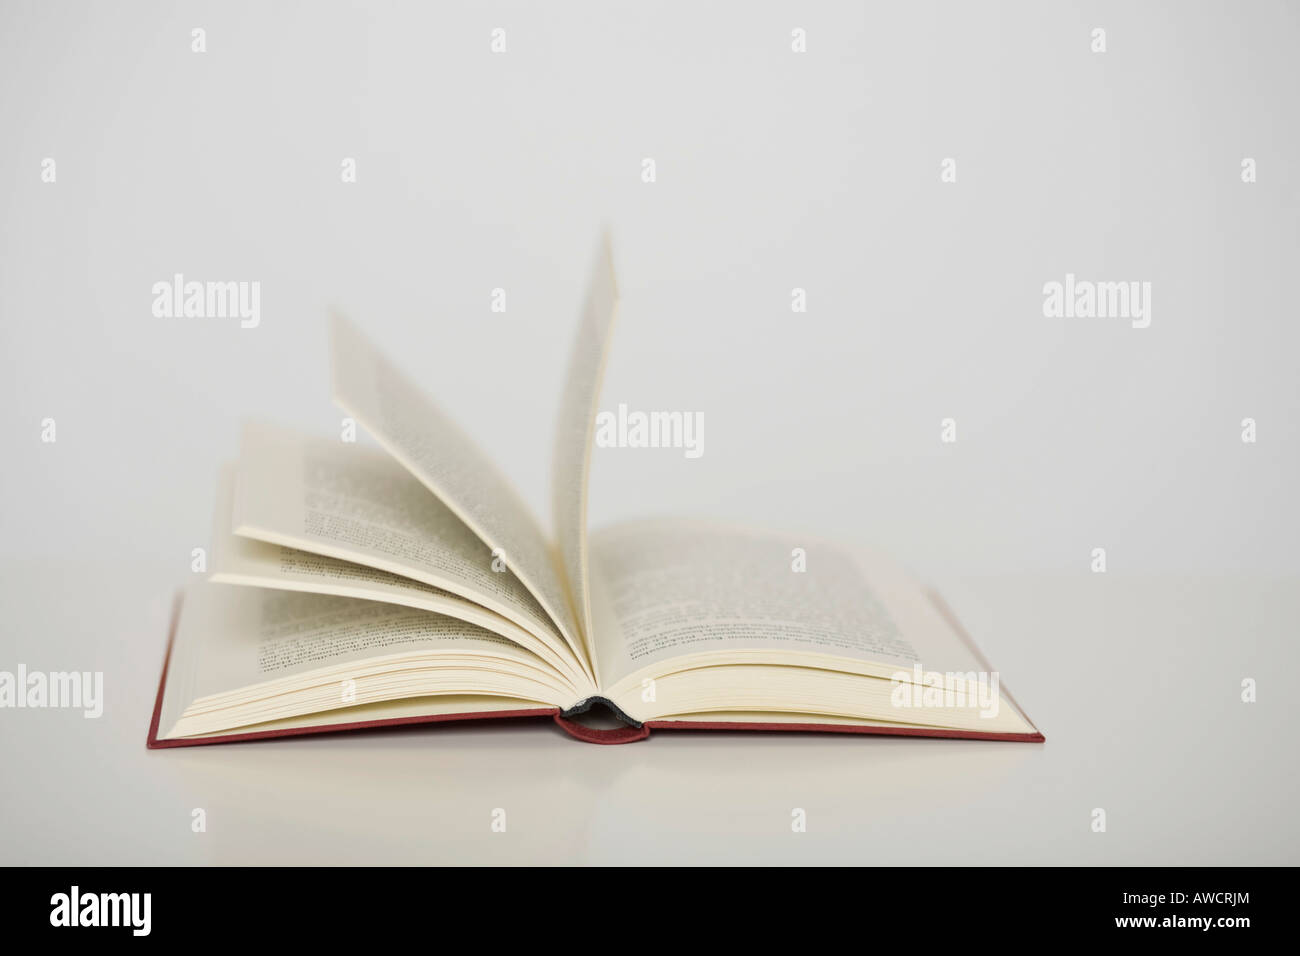 Opened book - Stock Image